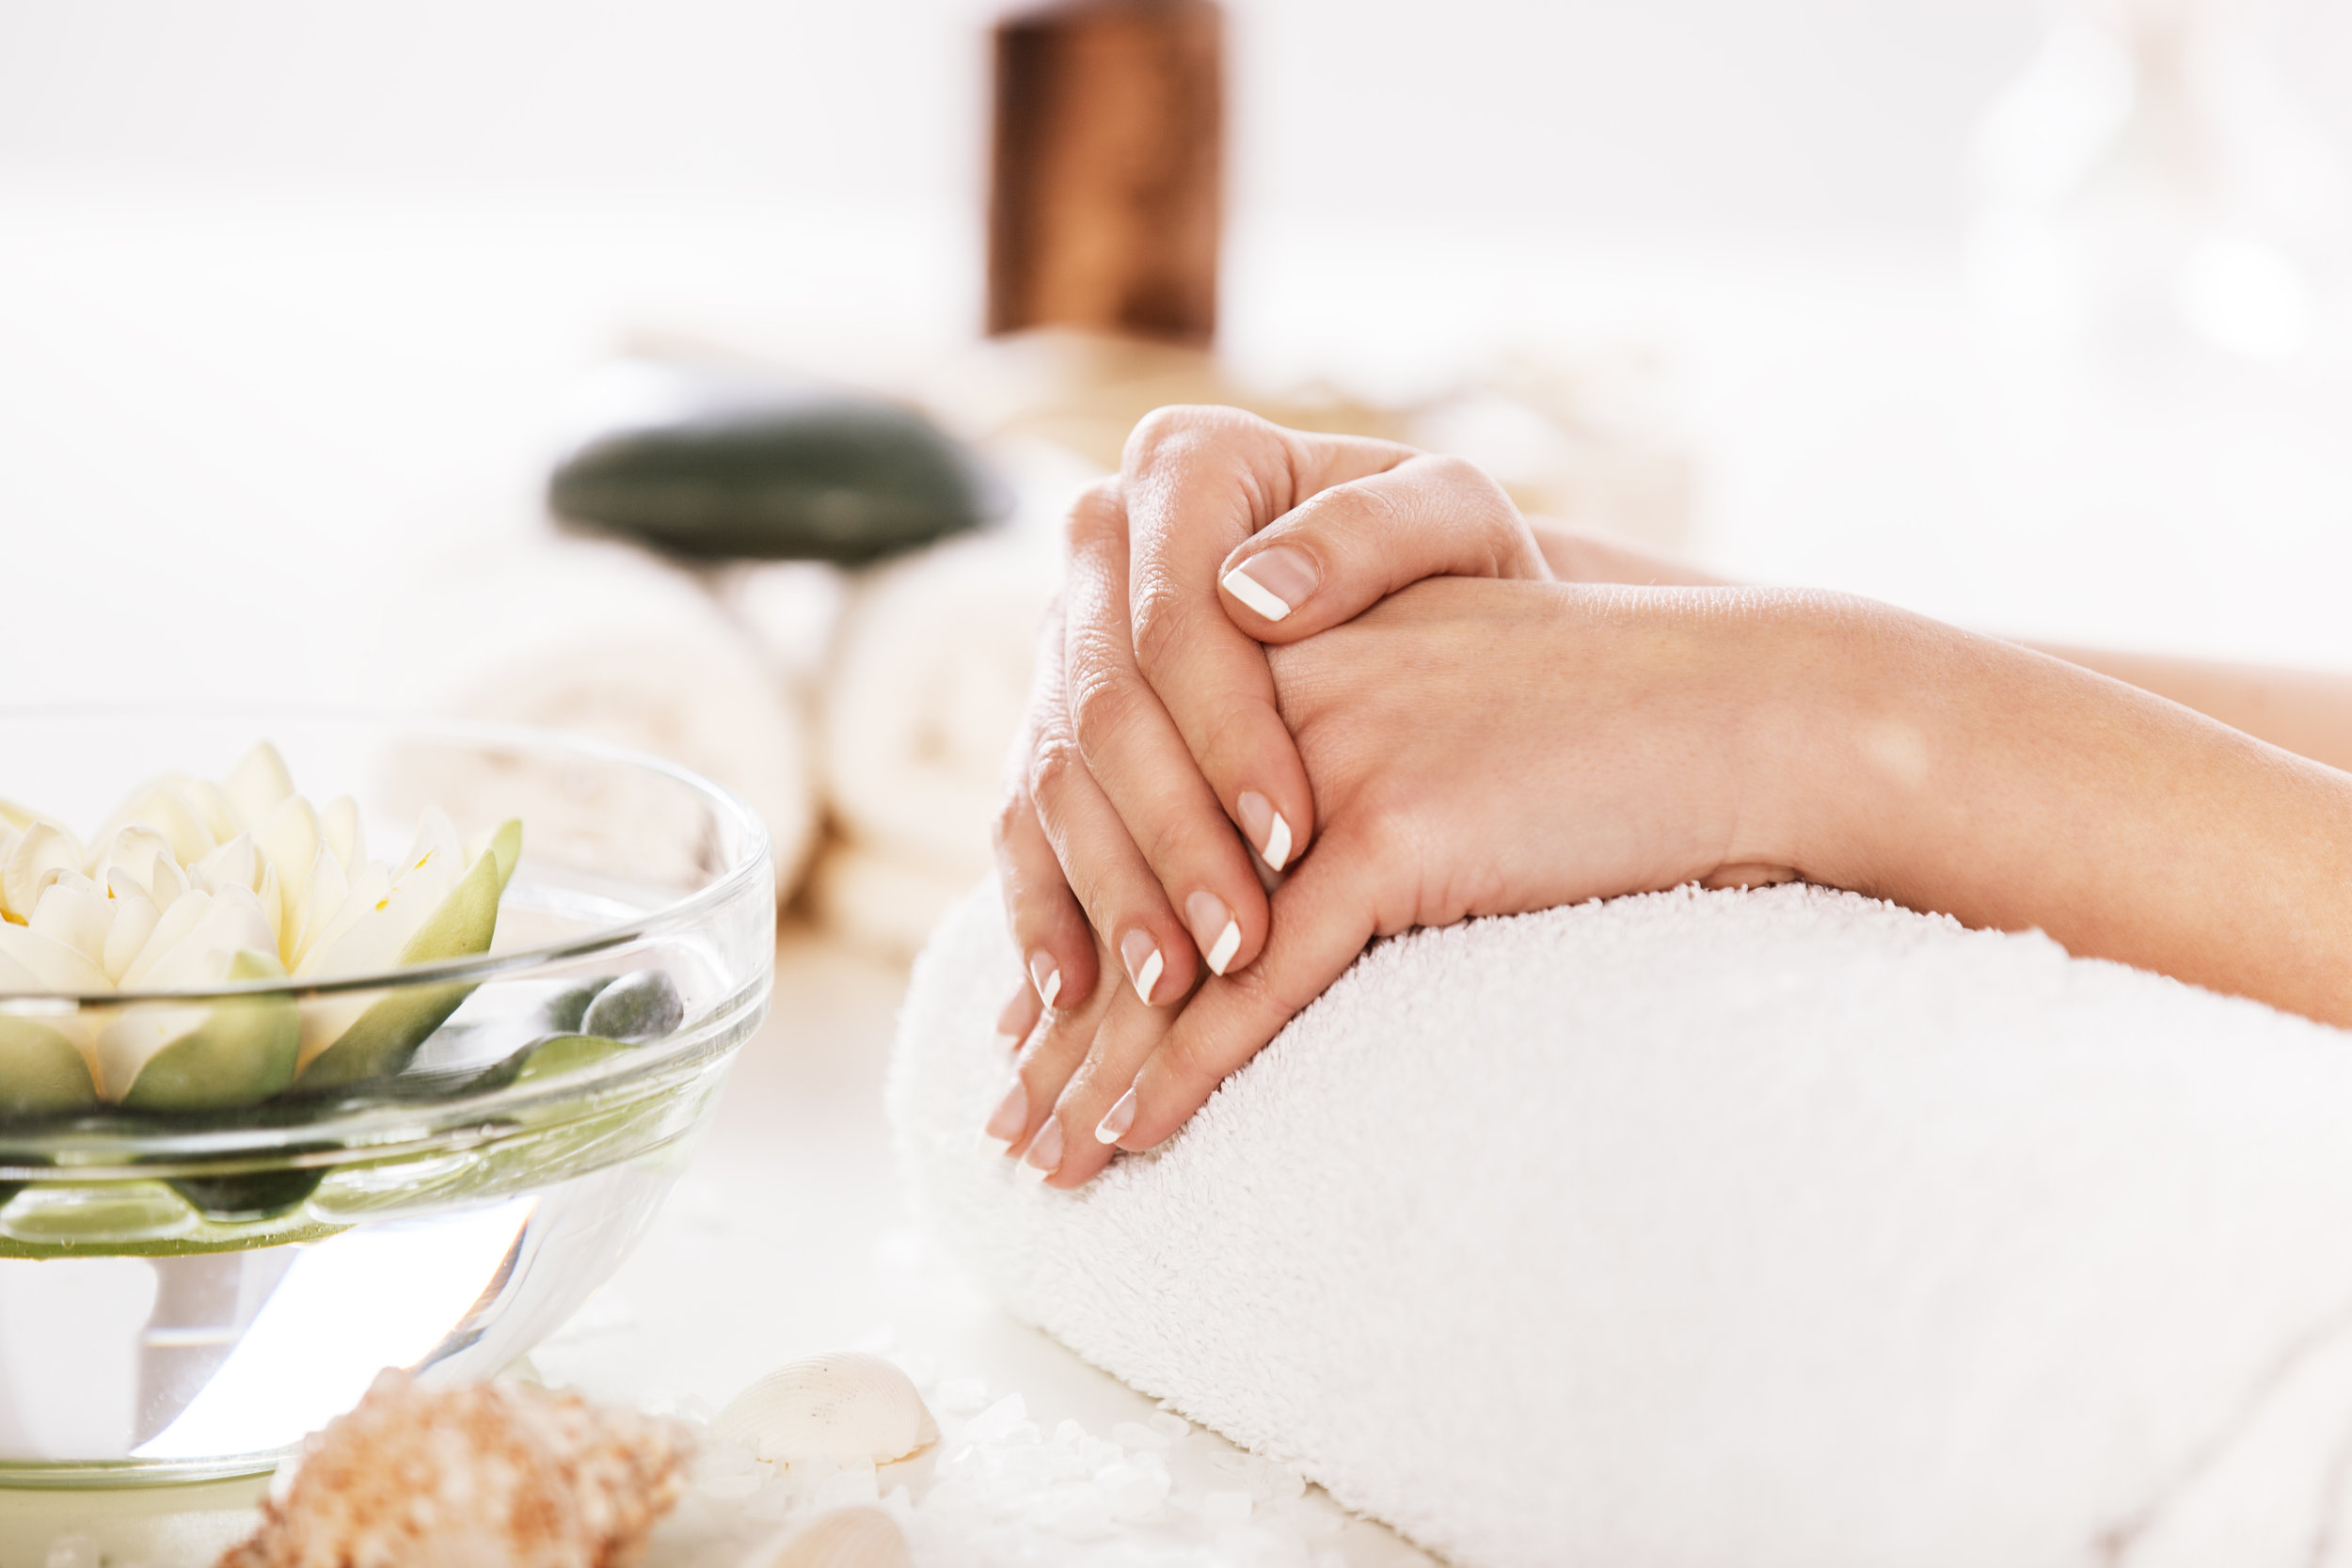 Enjoying Hand And Nail Treatment In Spa.